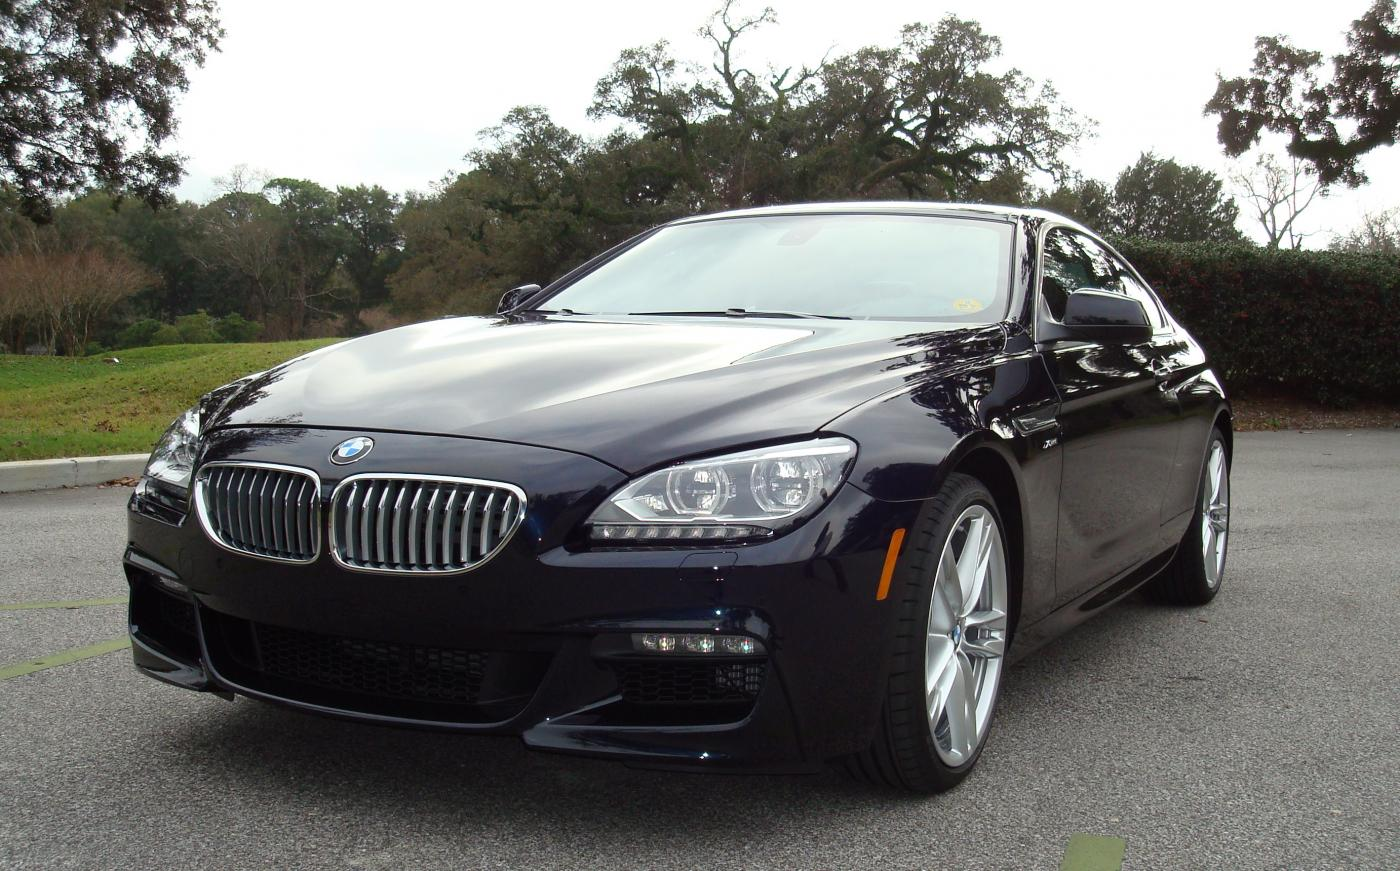 Coupe Series bmw 650i 2015 Carbon Black M Sport 650xi Coupe - New Pics!